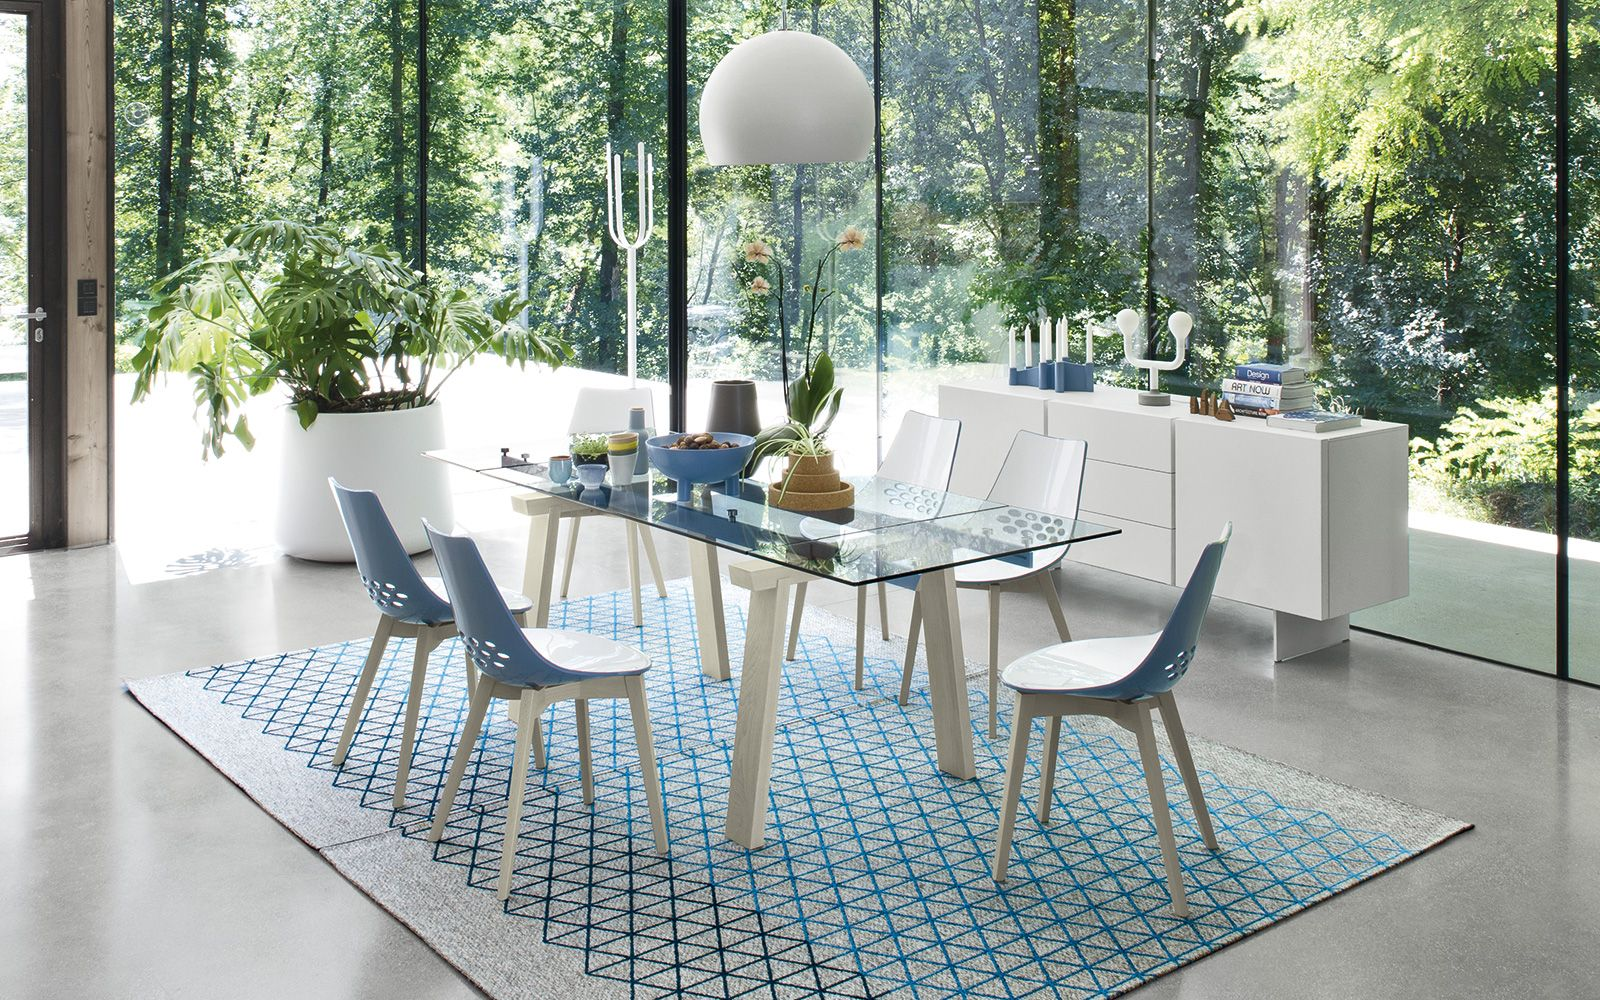 Modern Furnishing By Calligaris Italian Design Furniture With